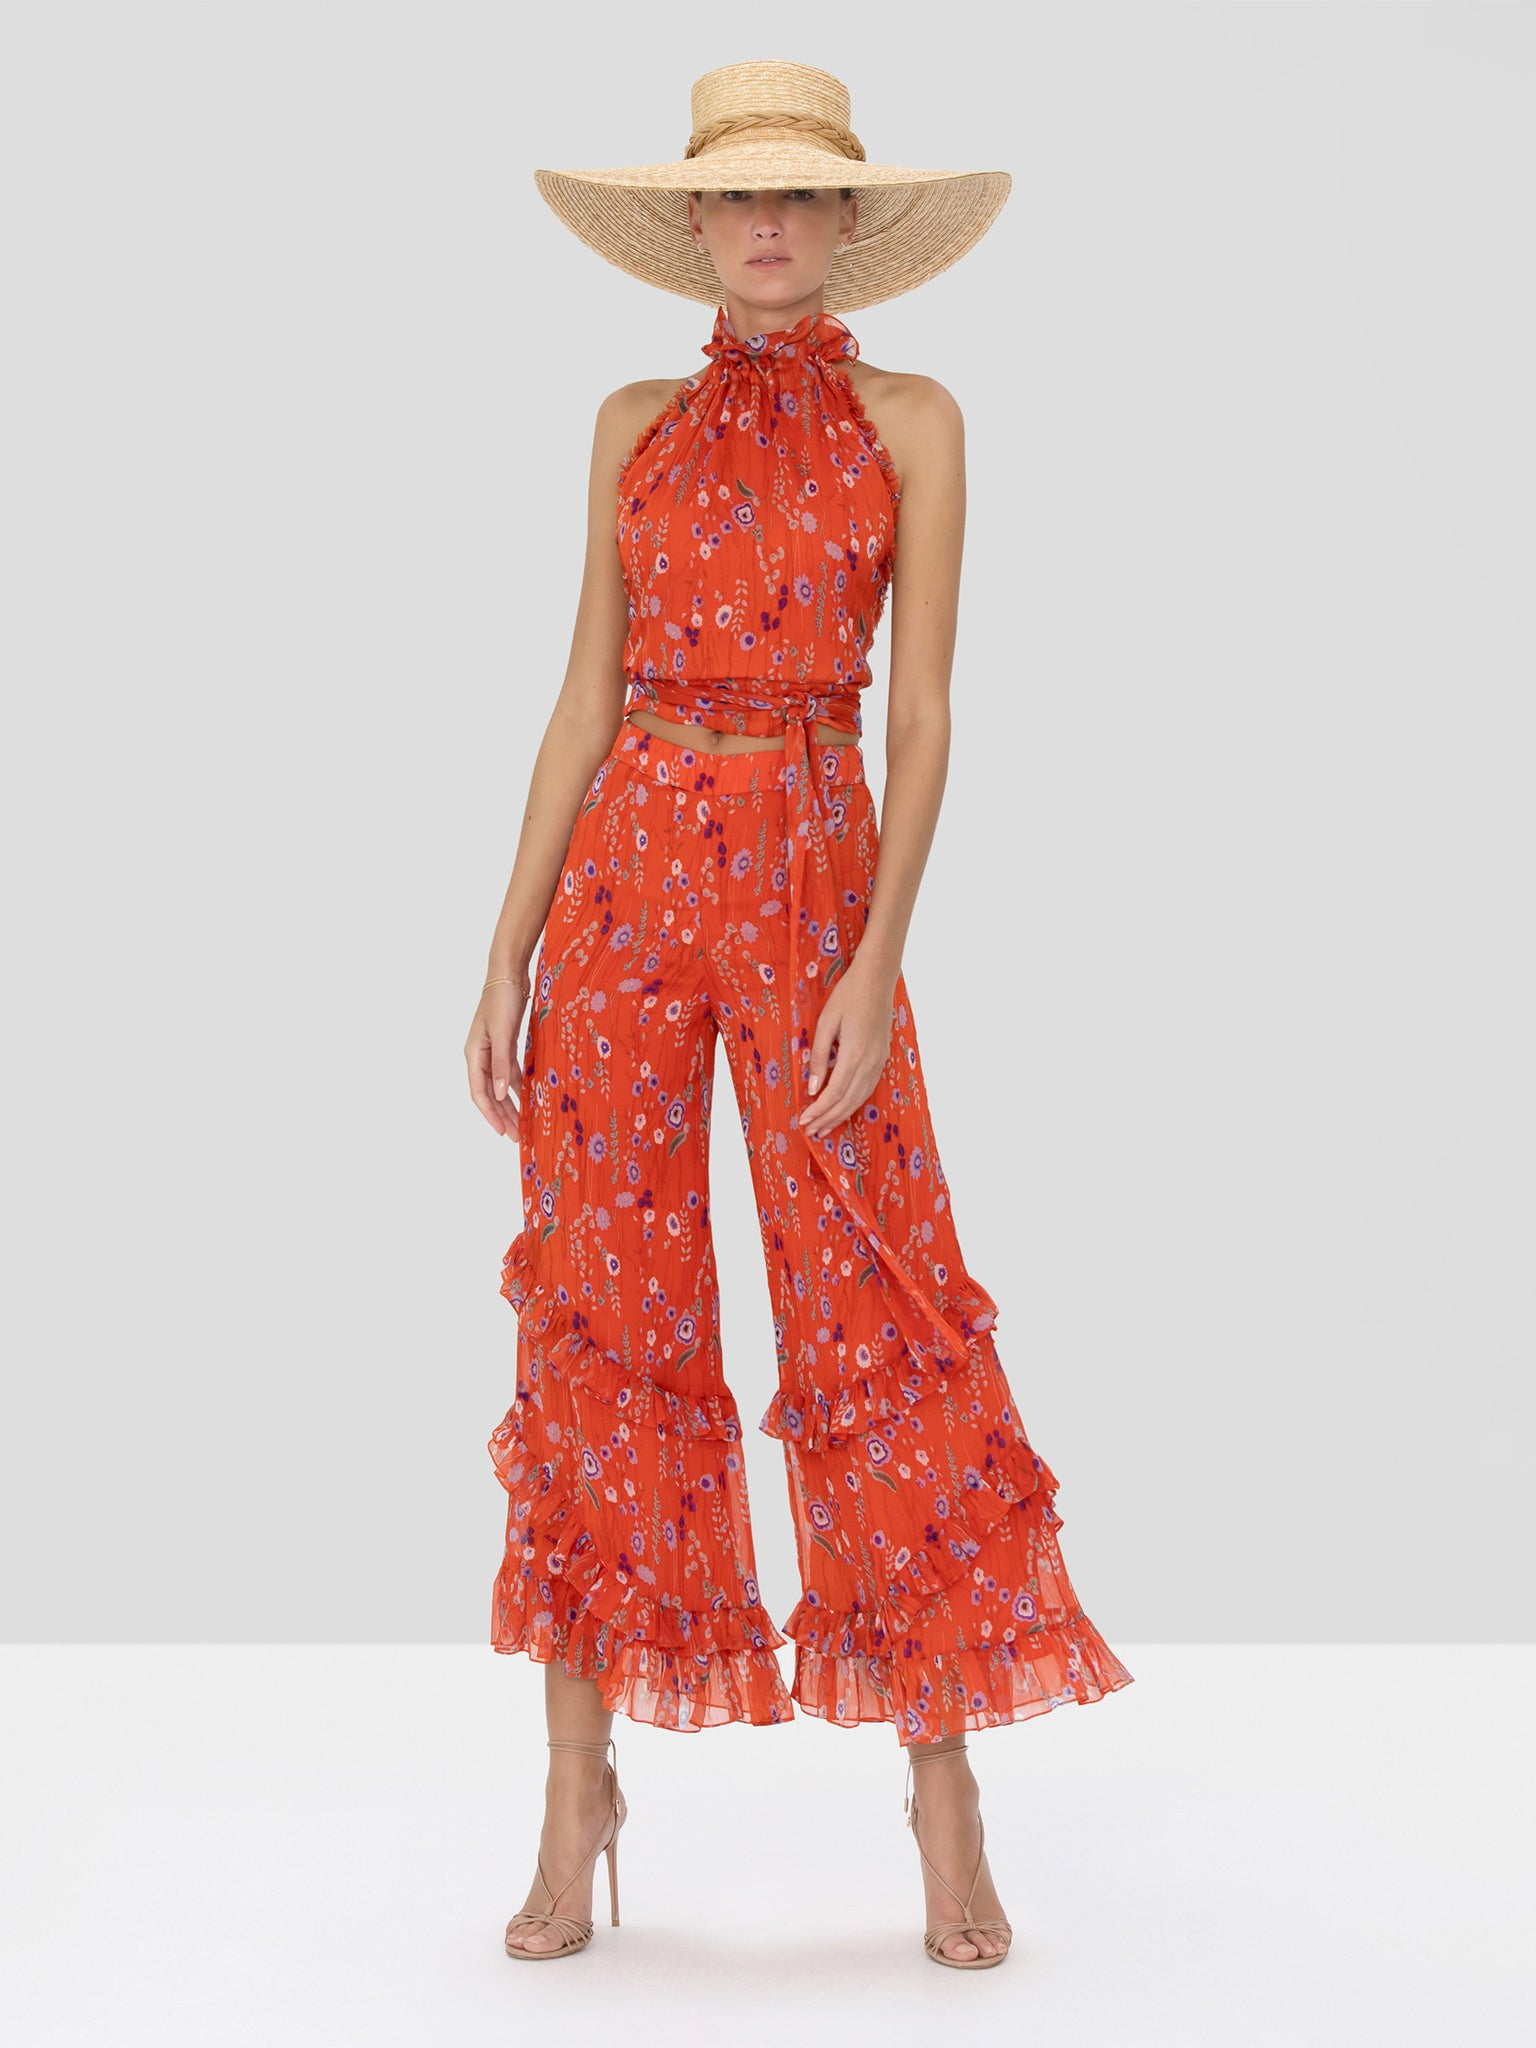 Alexis Balbina Top and Faizel Pant in Red Bouquet from Spring Summer 2020 Collection